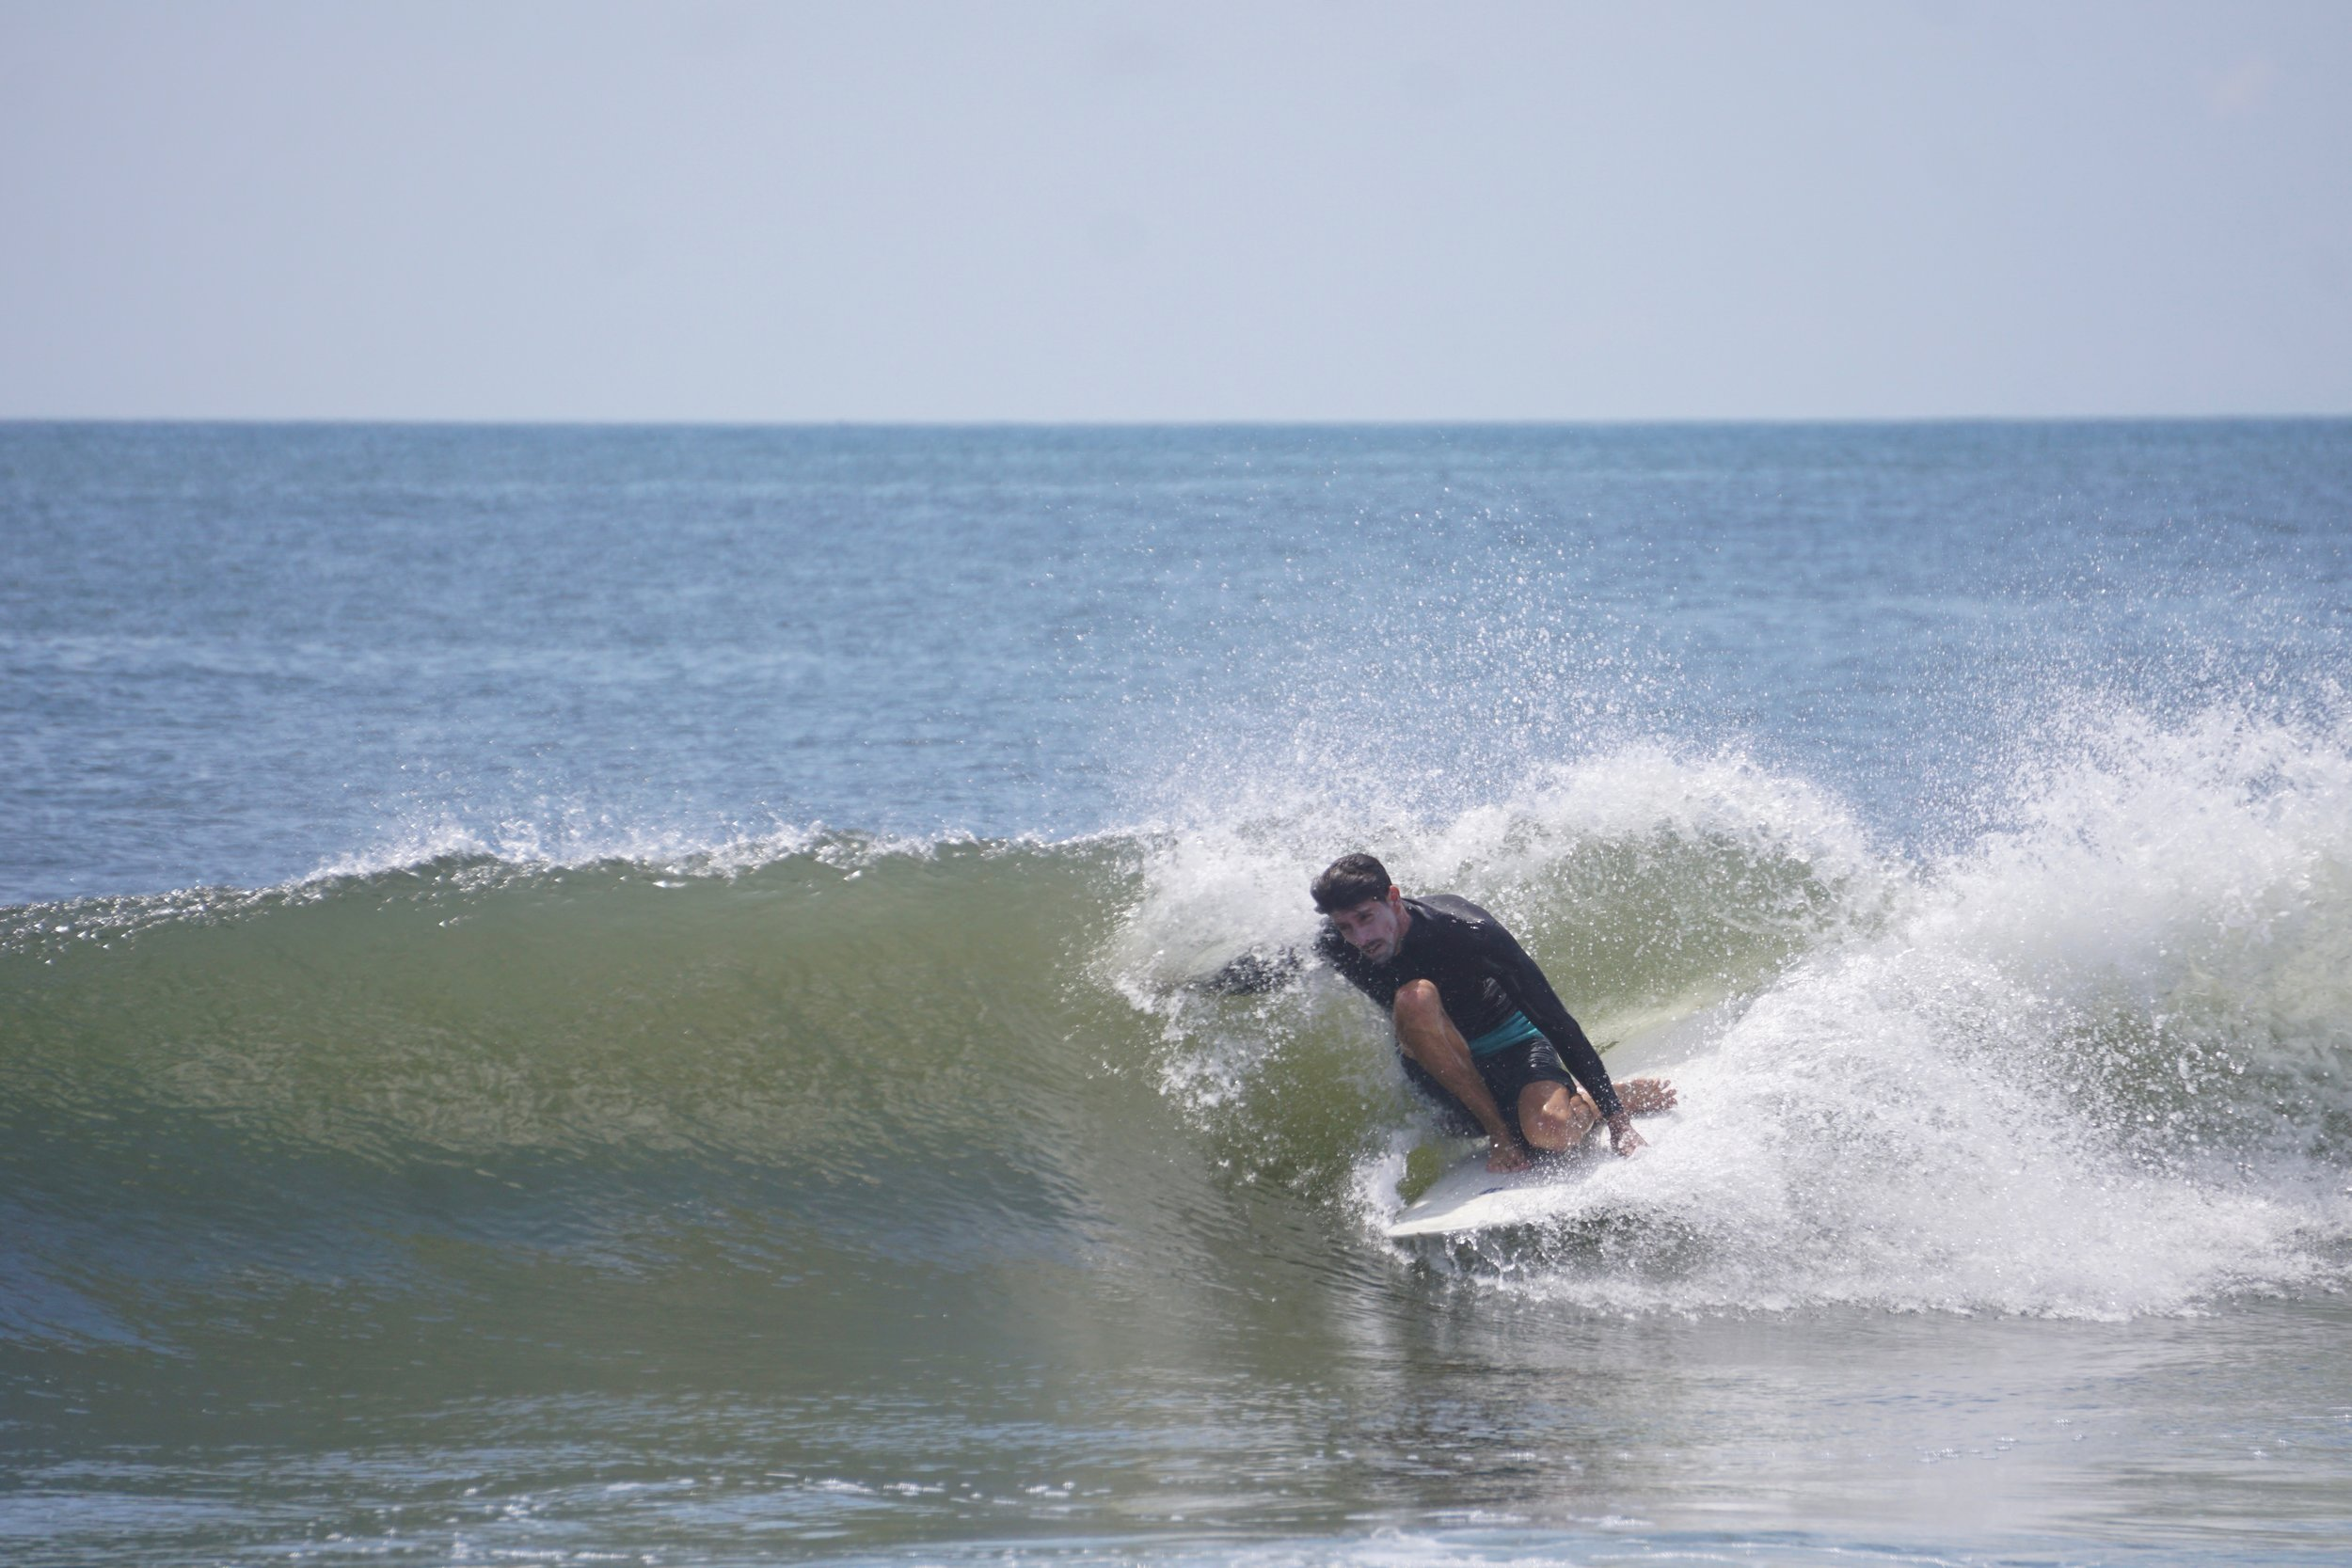 Making the calls at the beach ensures we find sandbars like this one. Juan on a mini summer runner.